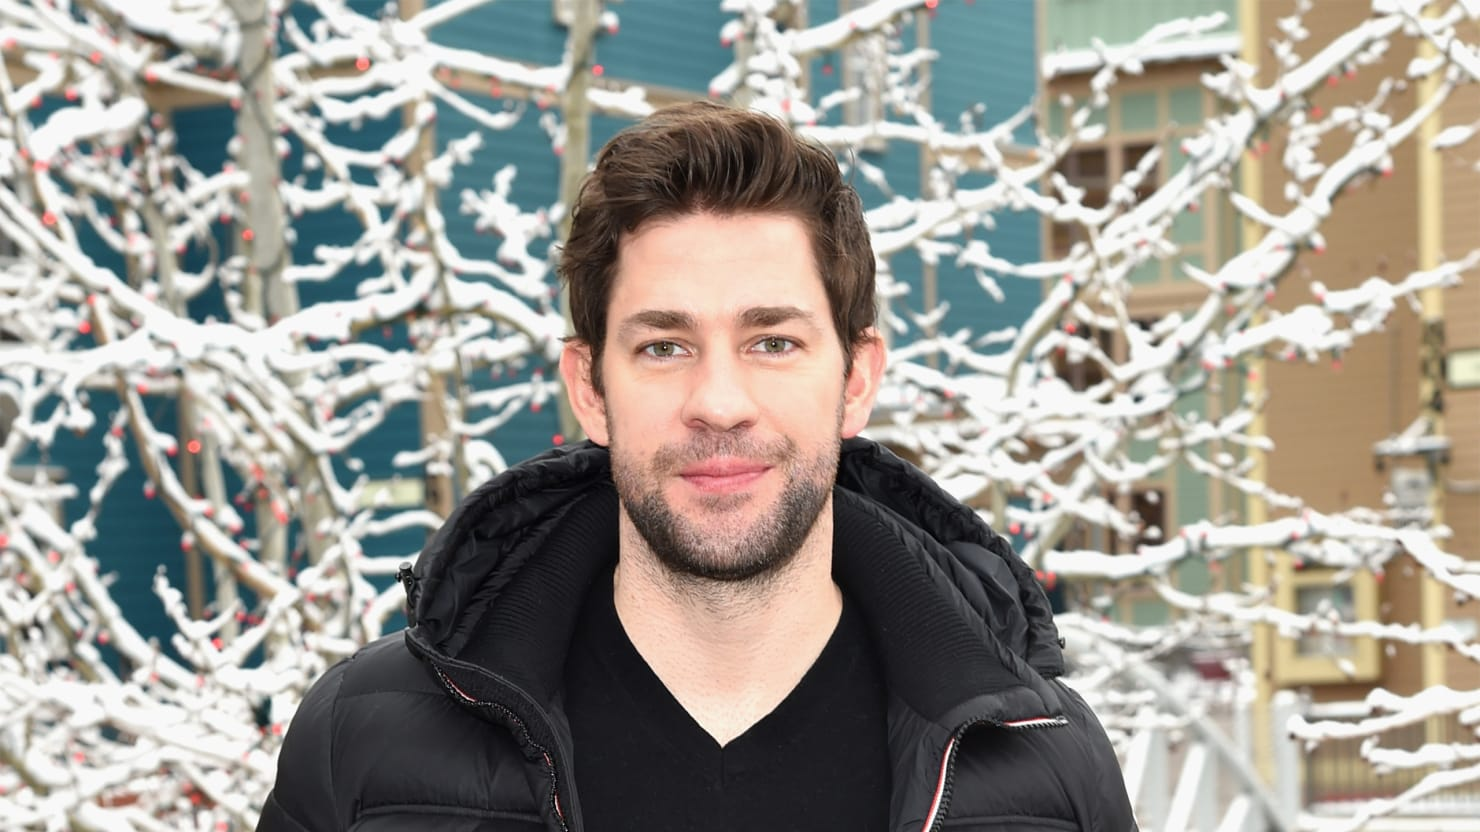 john krasinski criticizes politicians for exploiting 13 hours